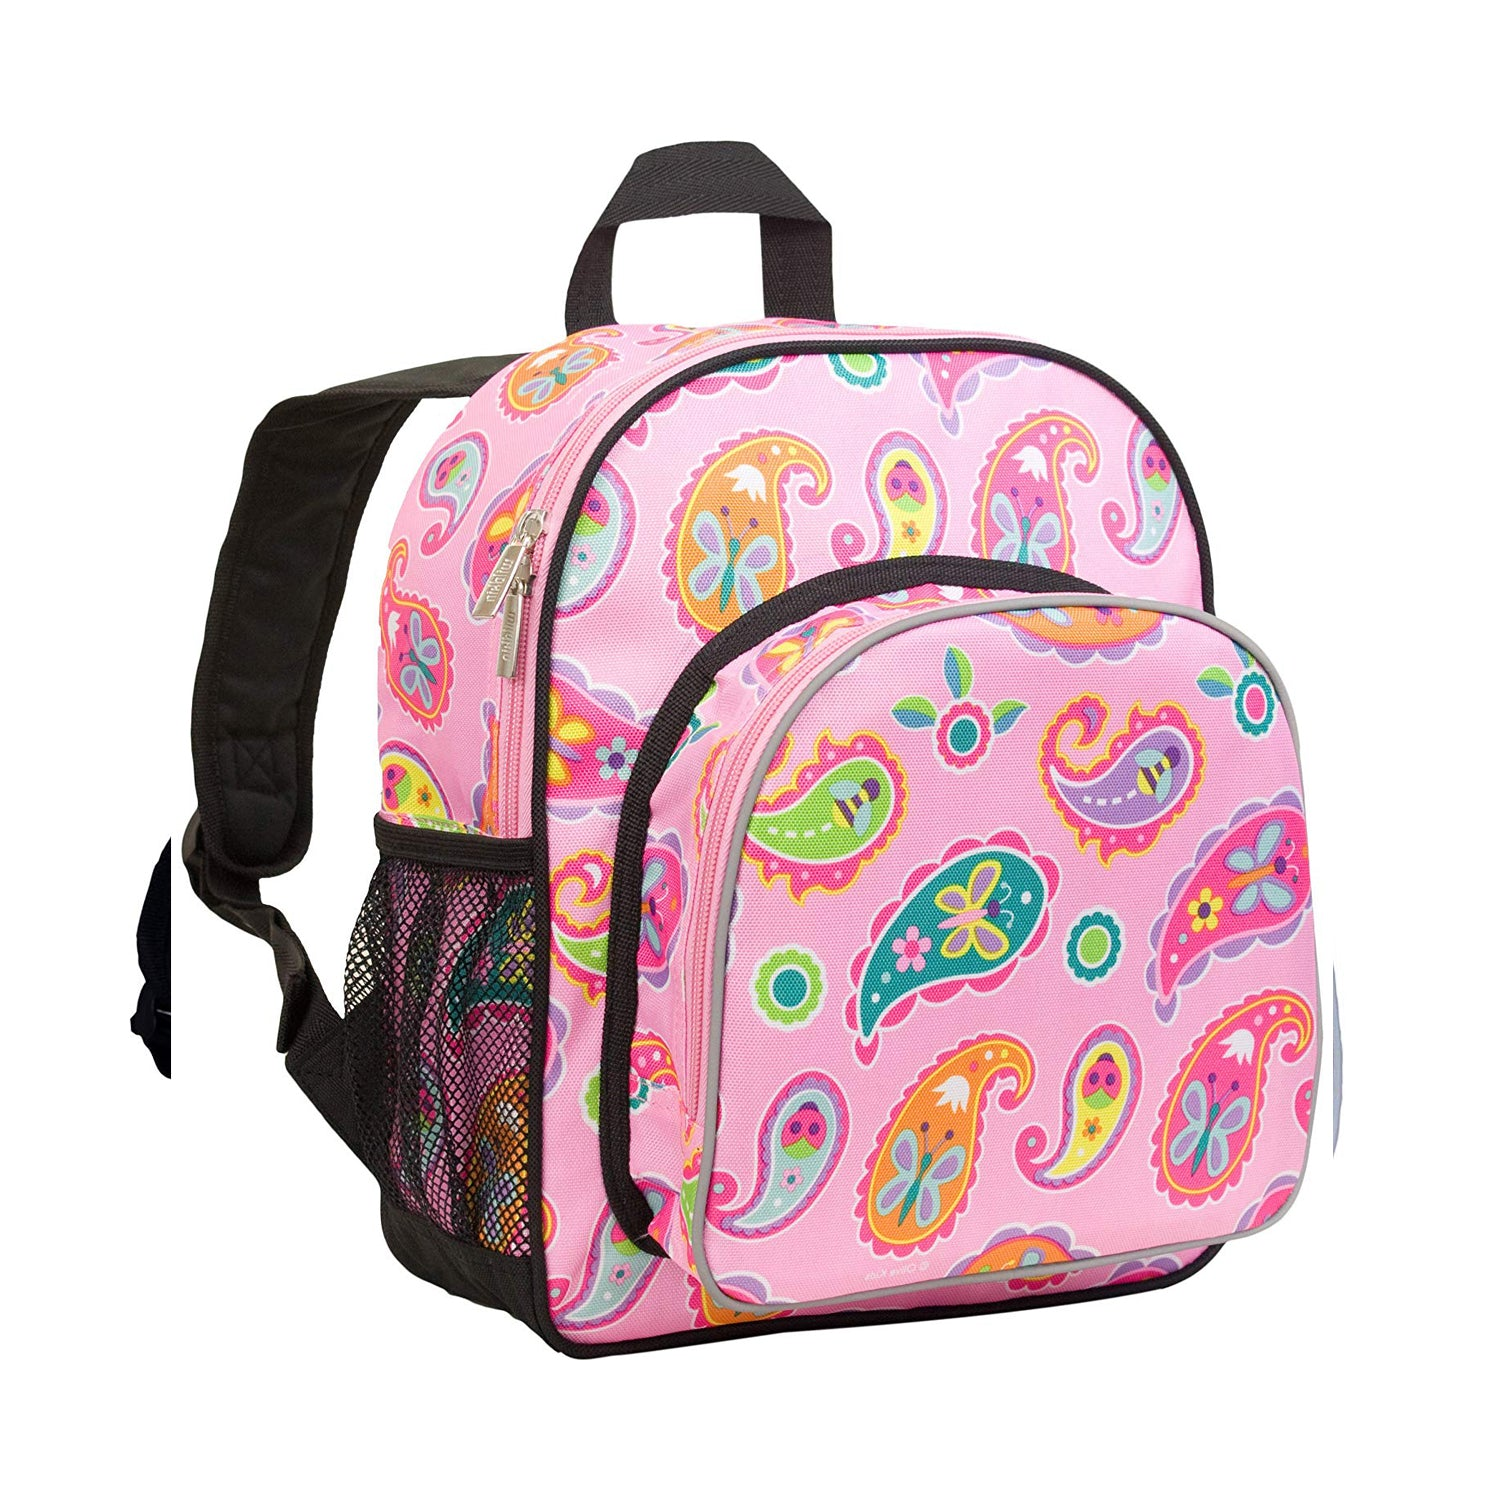 Paisley Dreams Toddler Backpack